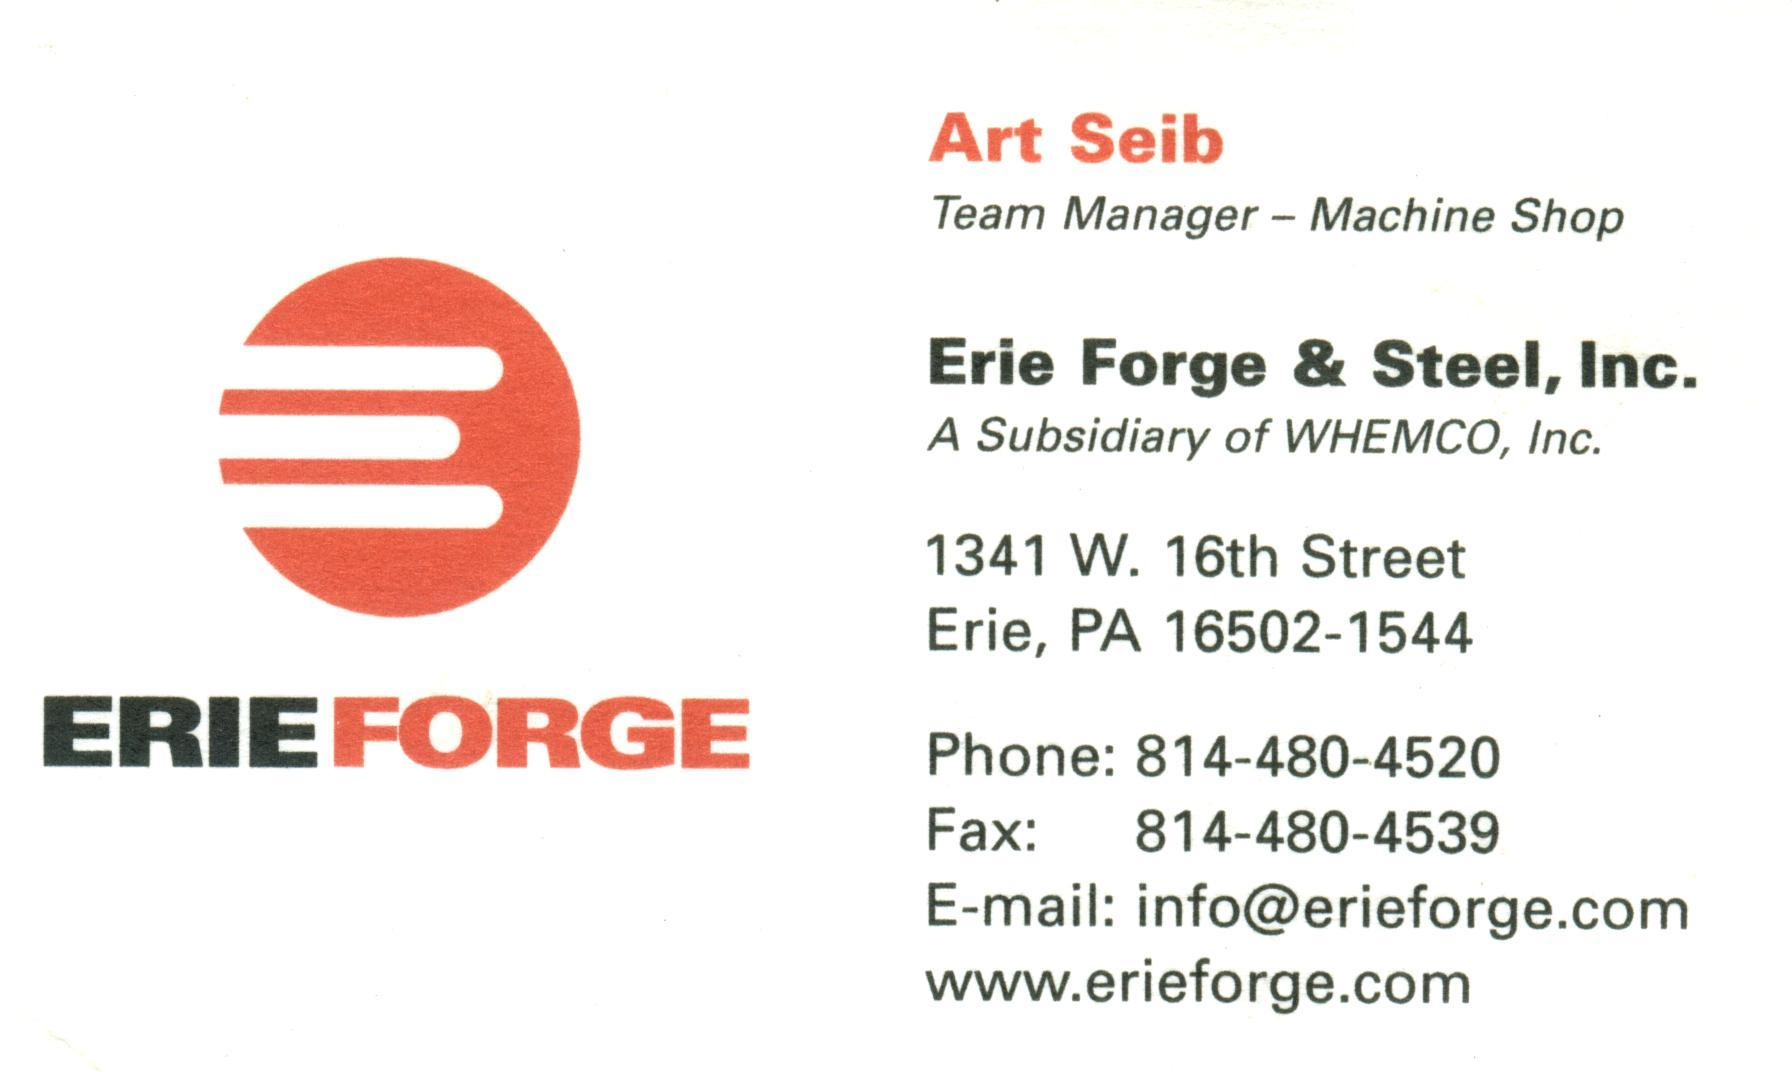 Erie Forge & Steel